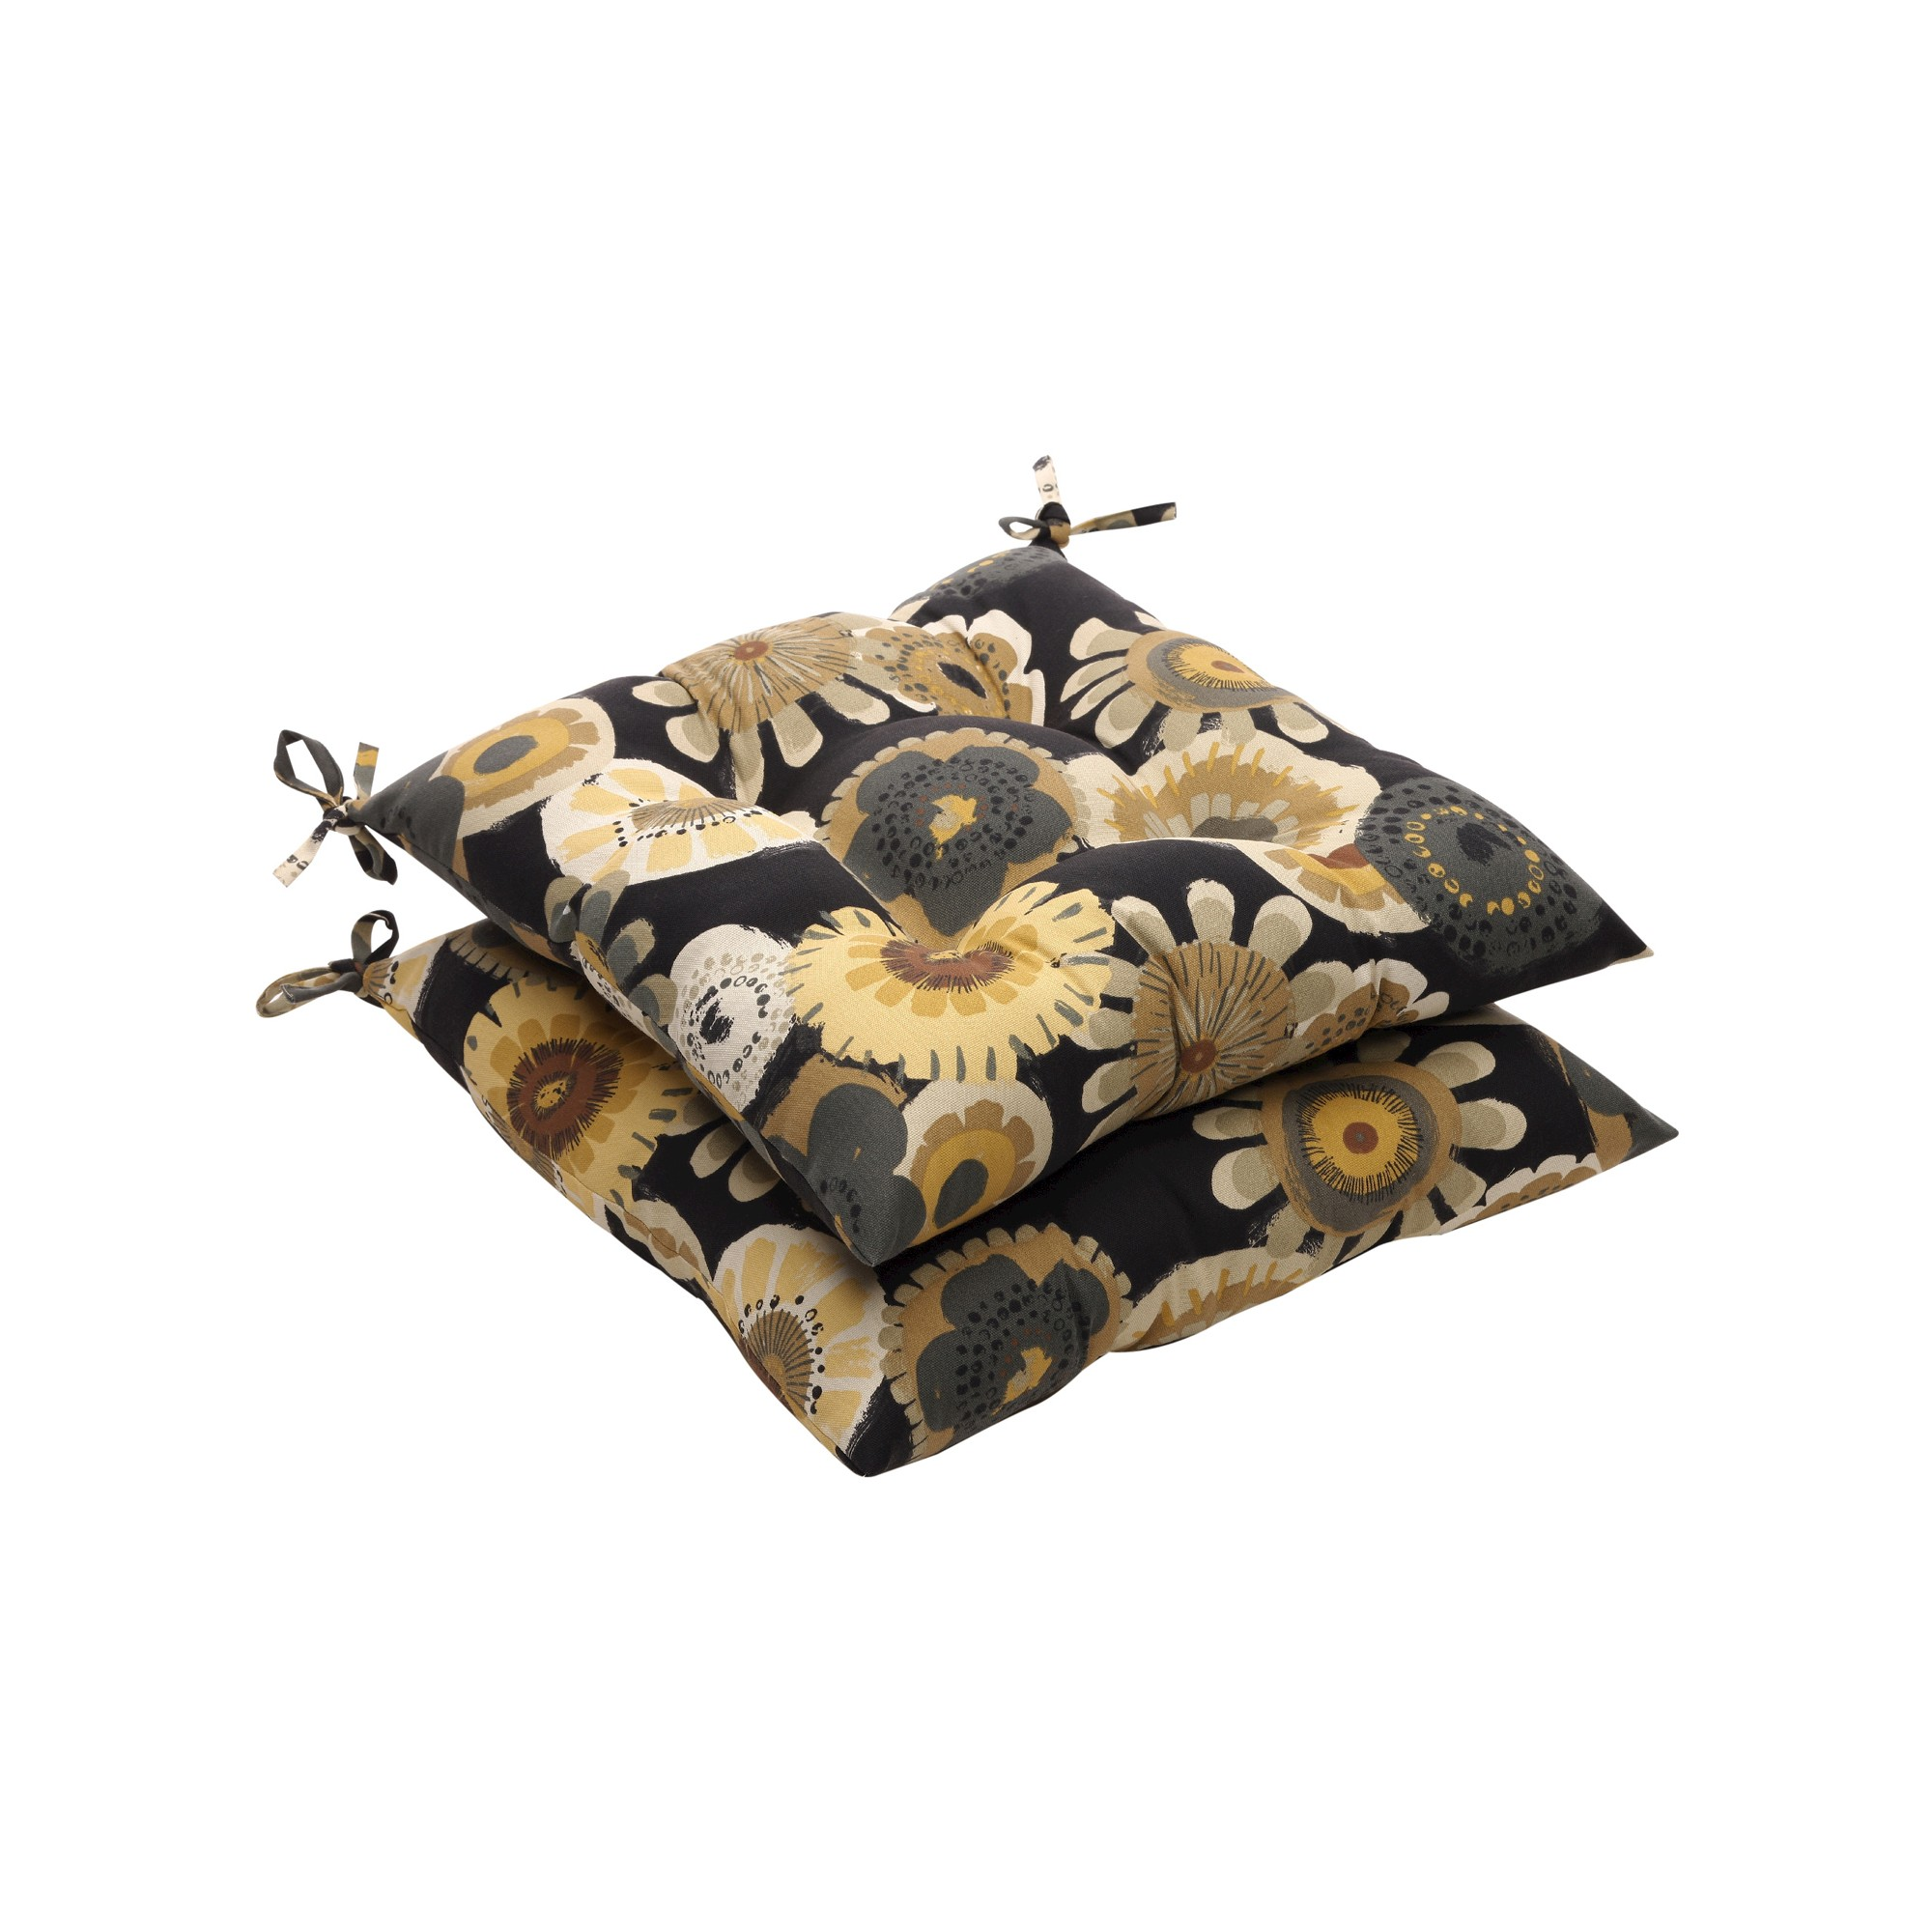 Outdoor 2-Piece Tufted Chair Cushion Set - Black/Yellow Floral